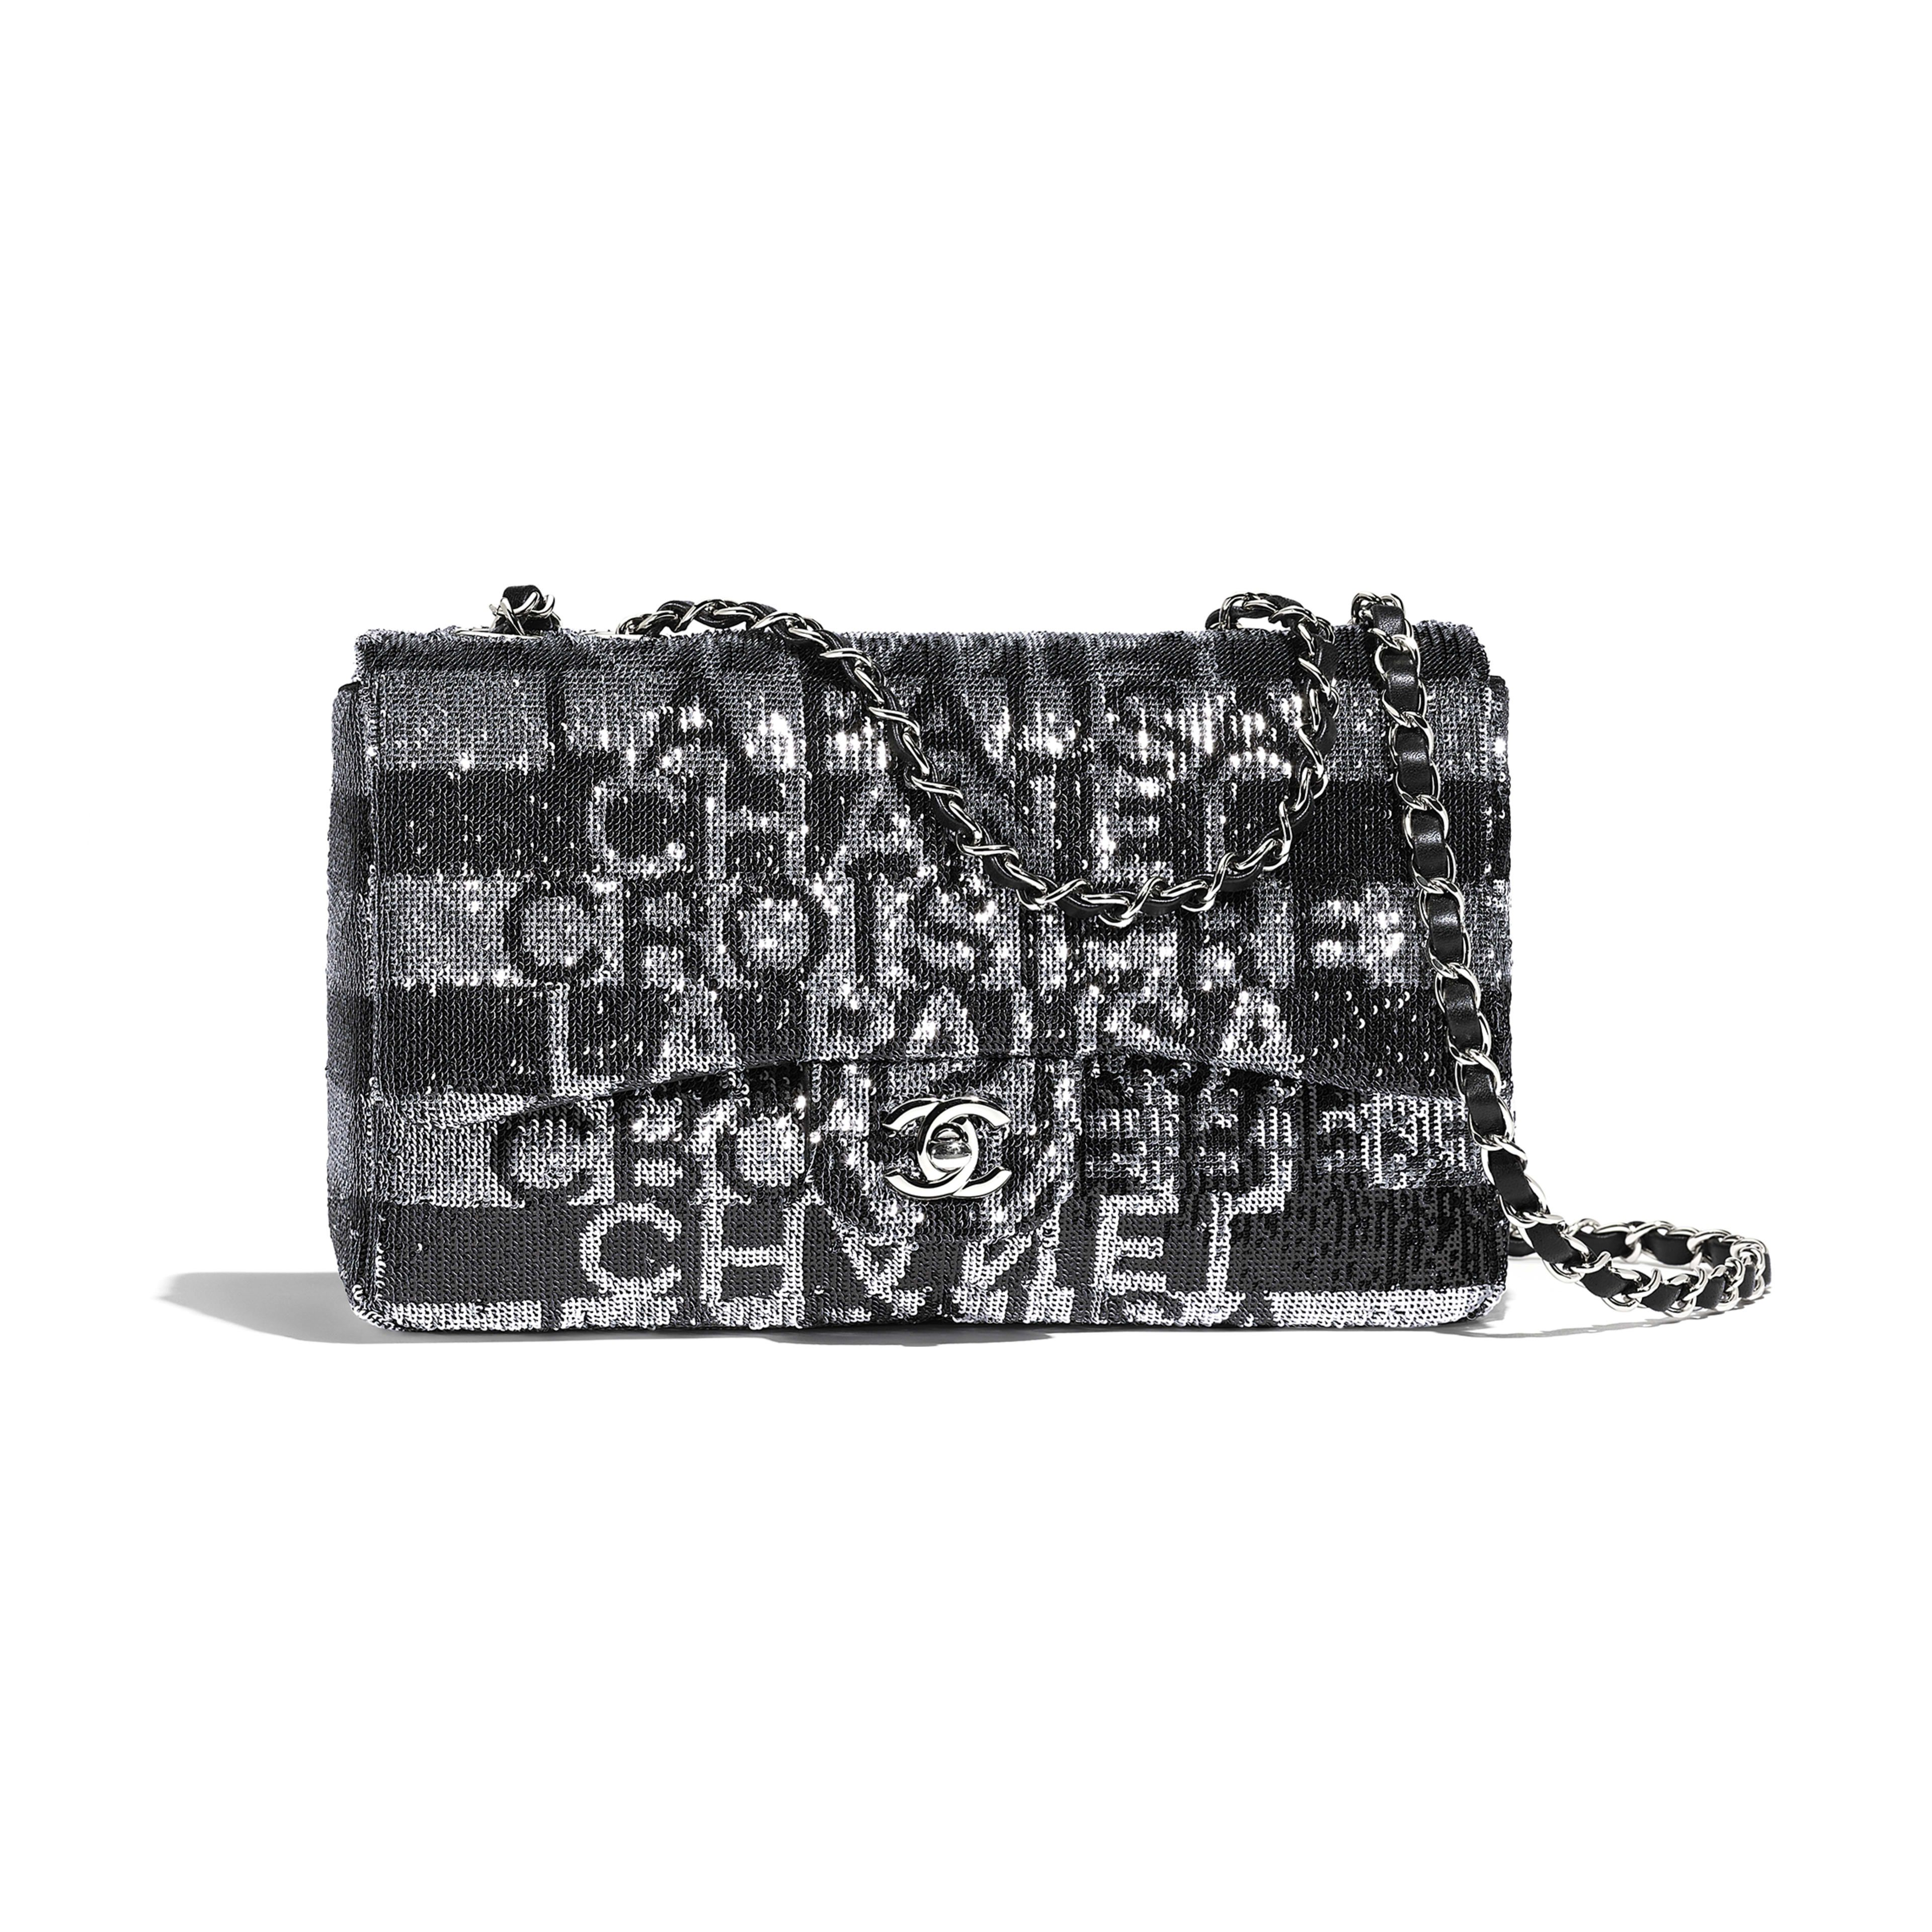 e968ac7dc459 Embroidered Satin, Sequins & Silver-Tone Metal Silver & Black Flap Bag |  CHANEL